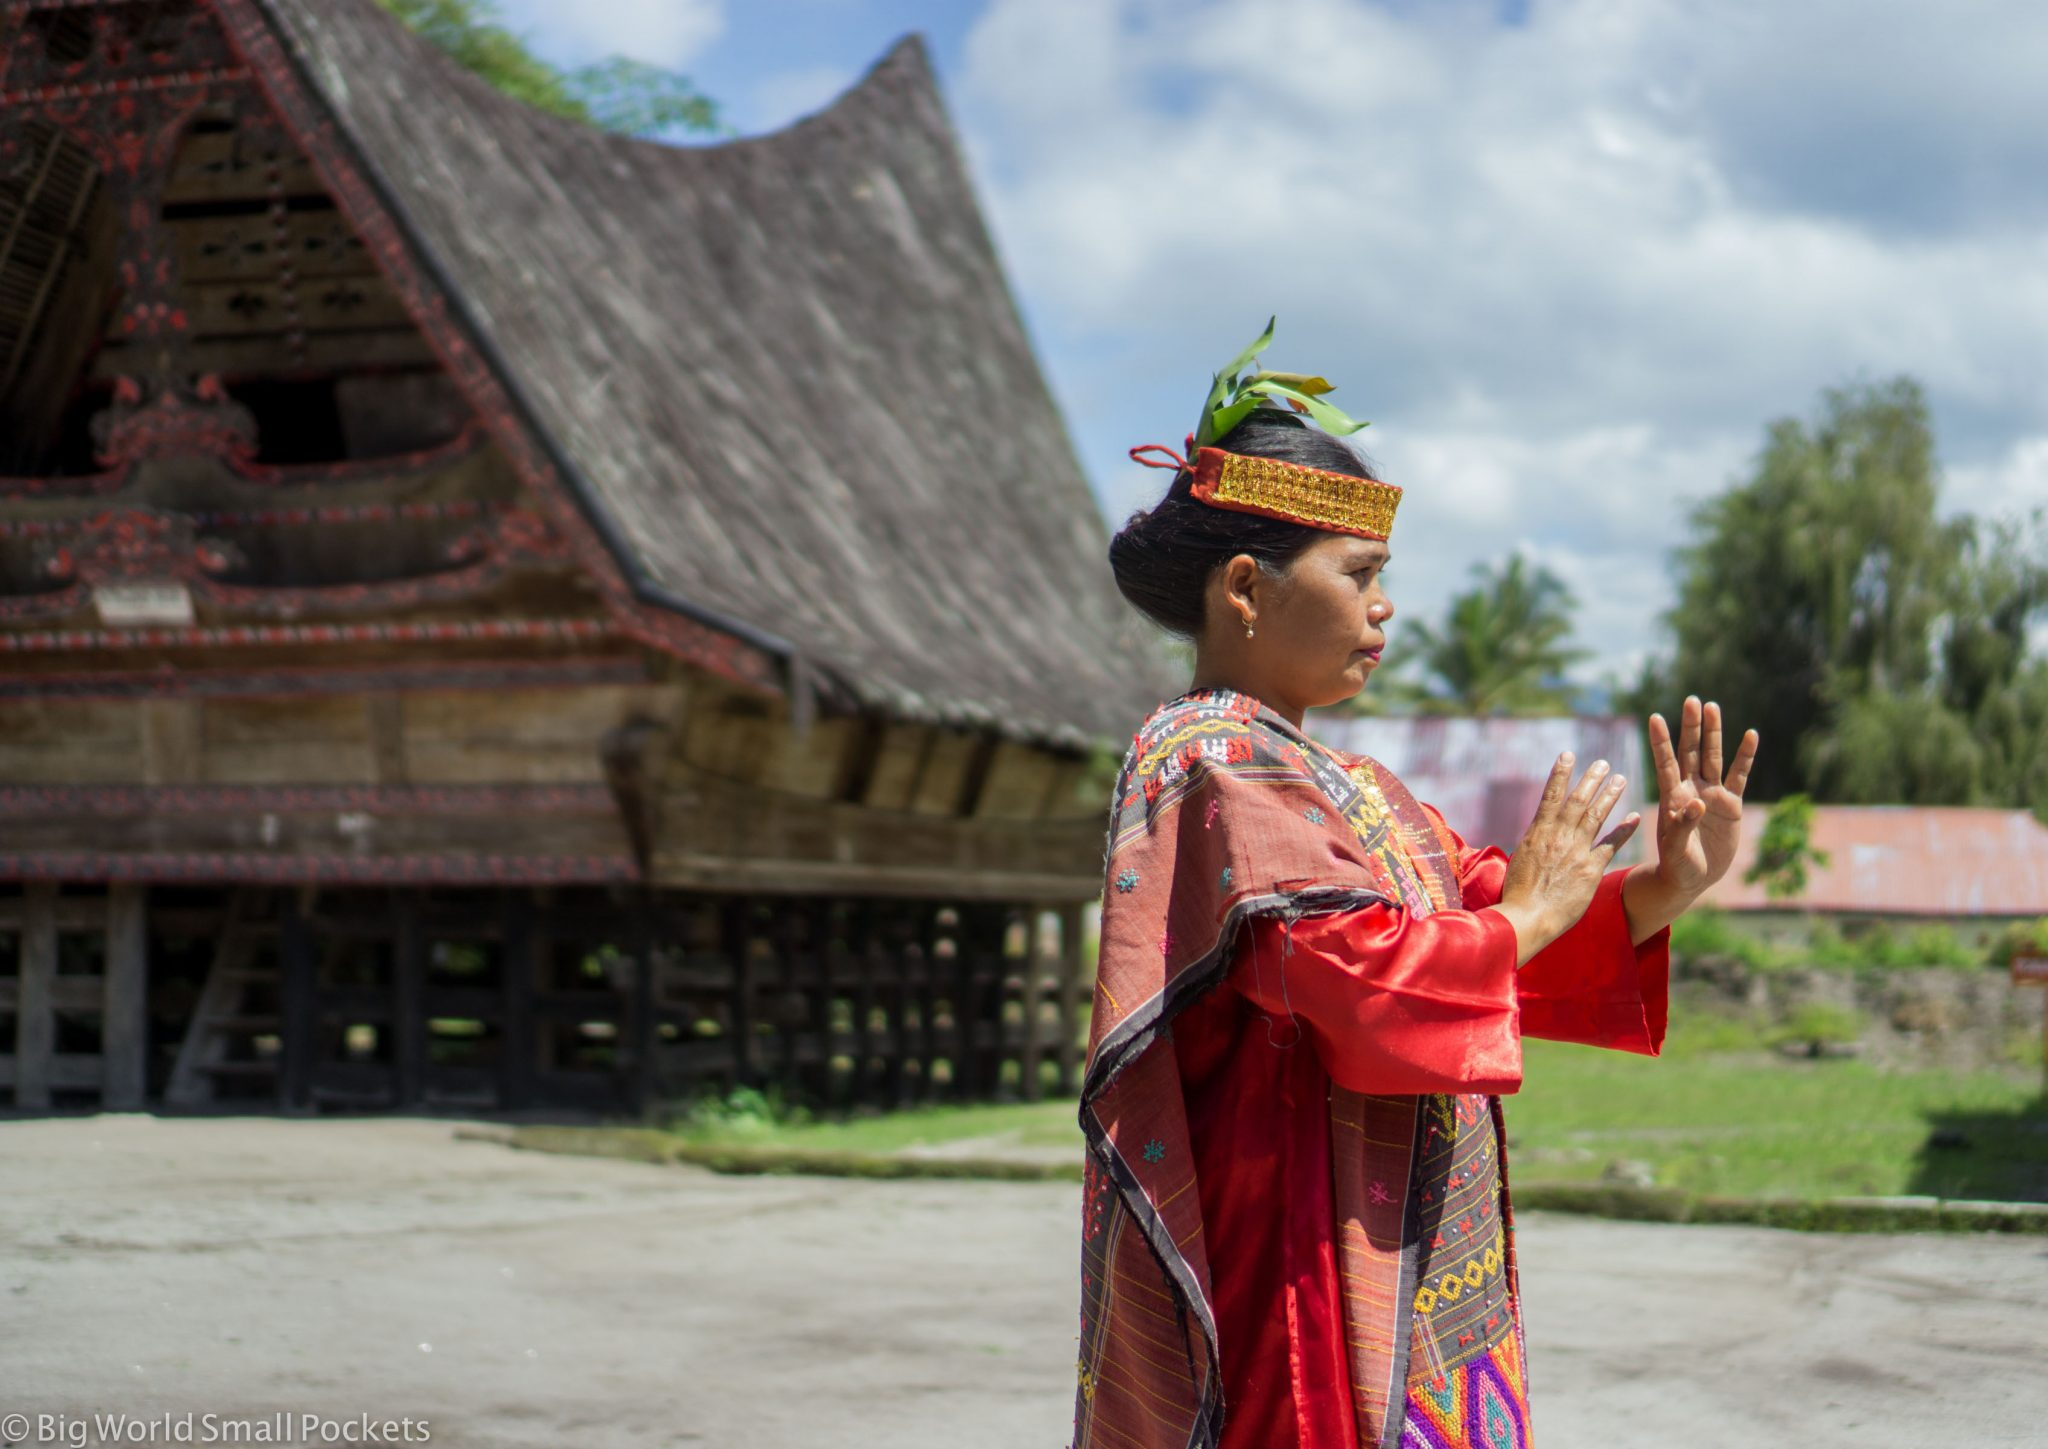 Indonesia, Lake Toba, Traditional Dancer